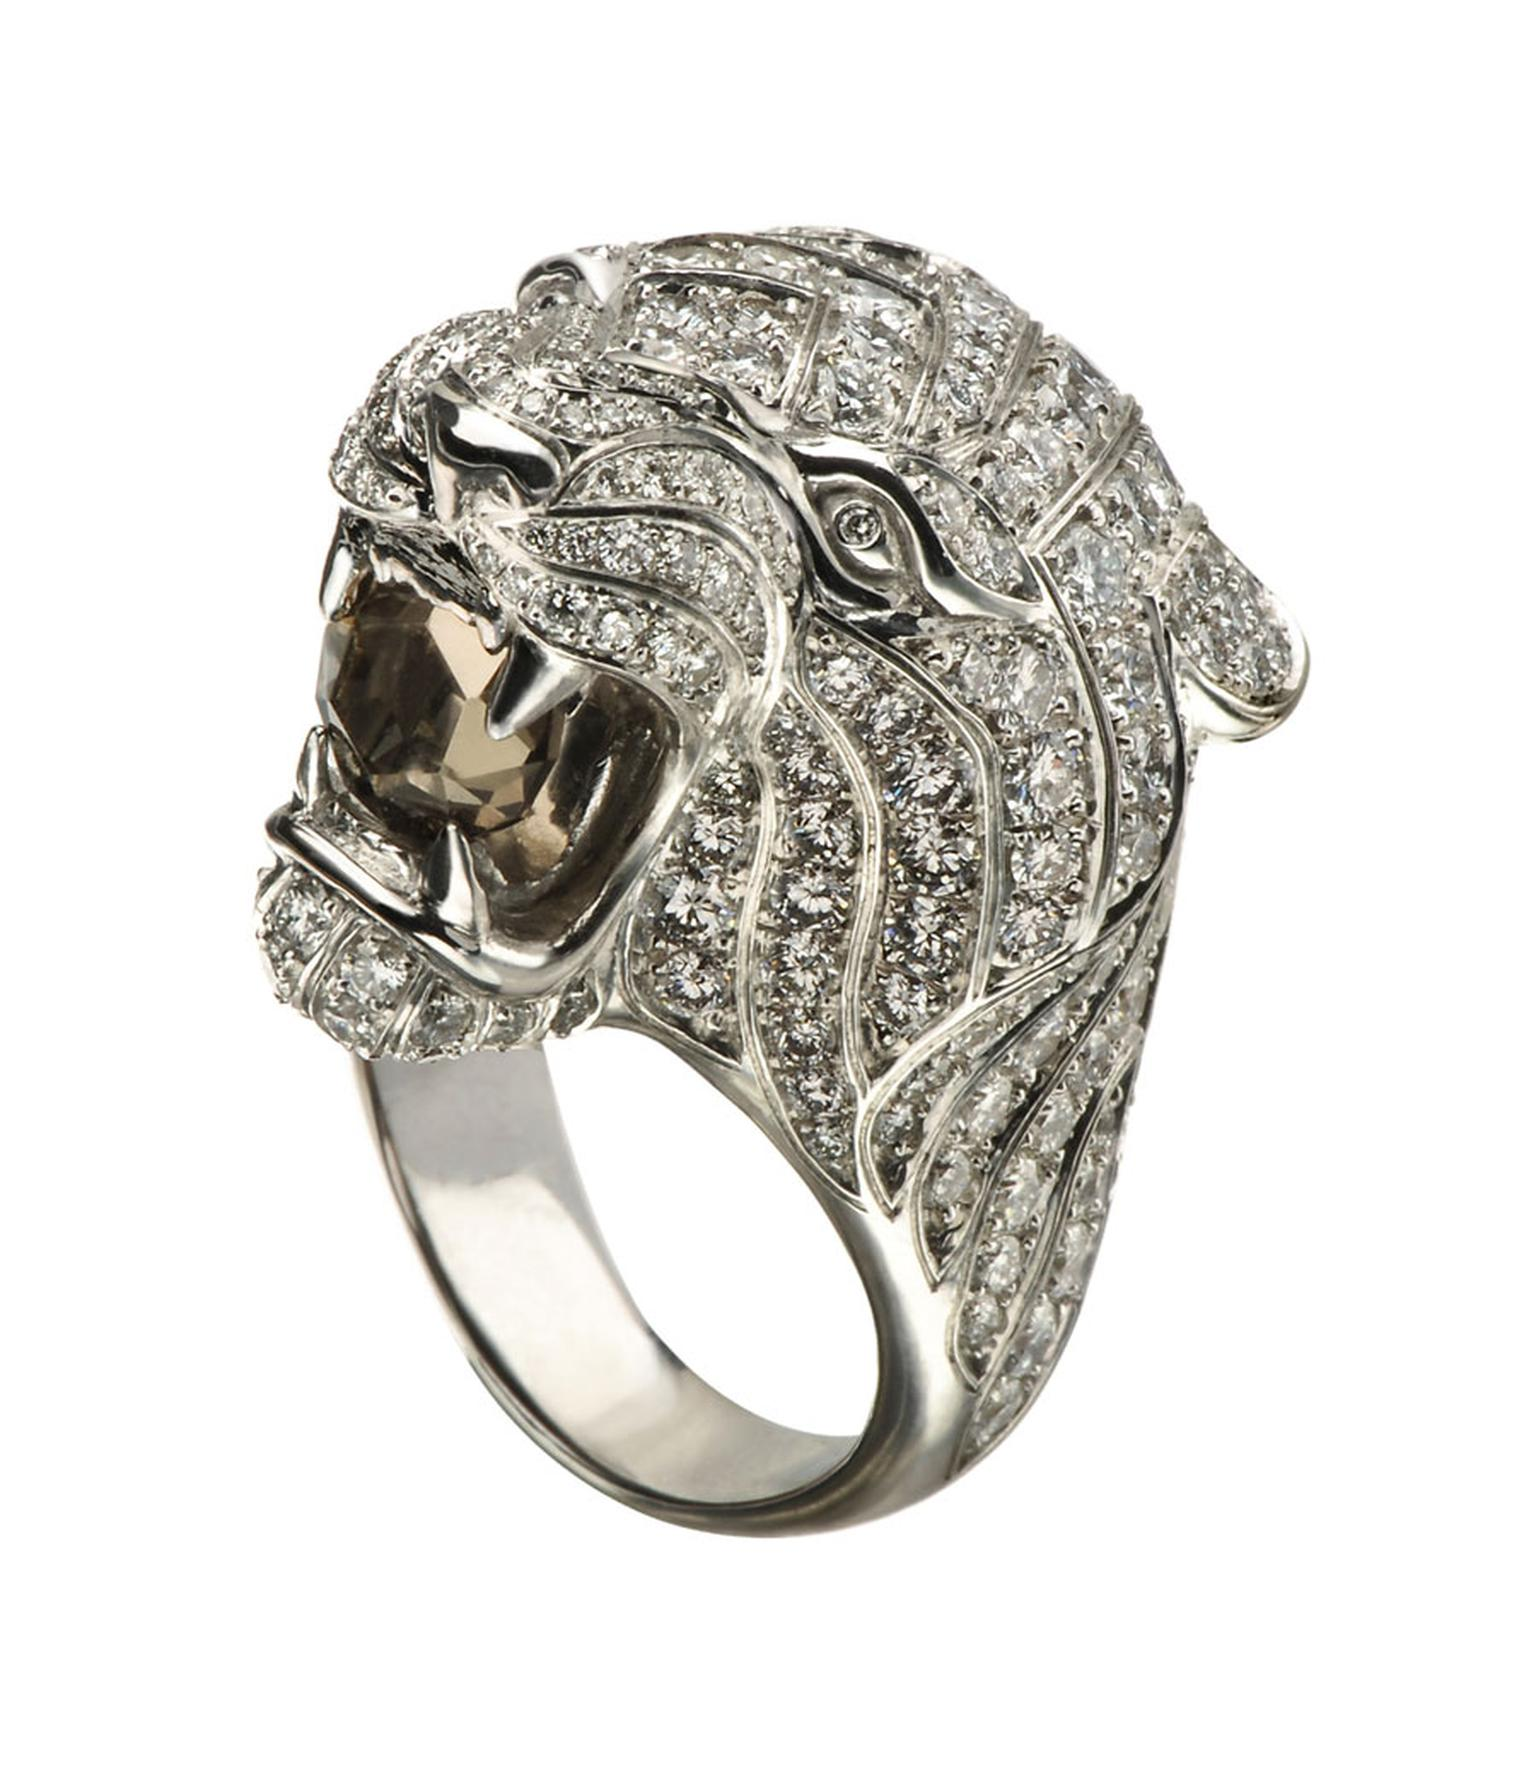 Bestiario-Ring-in-white-gold-with-diamonds-and-smokey-quartz.jpg